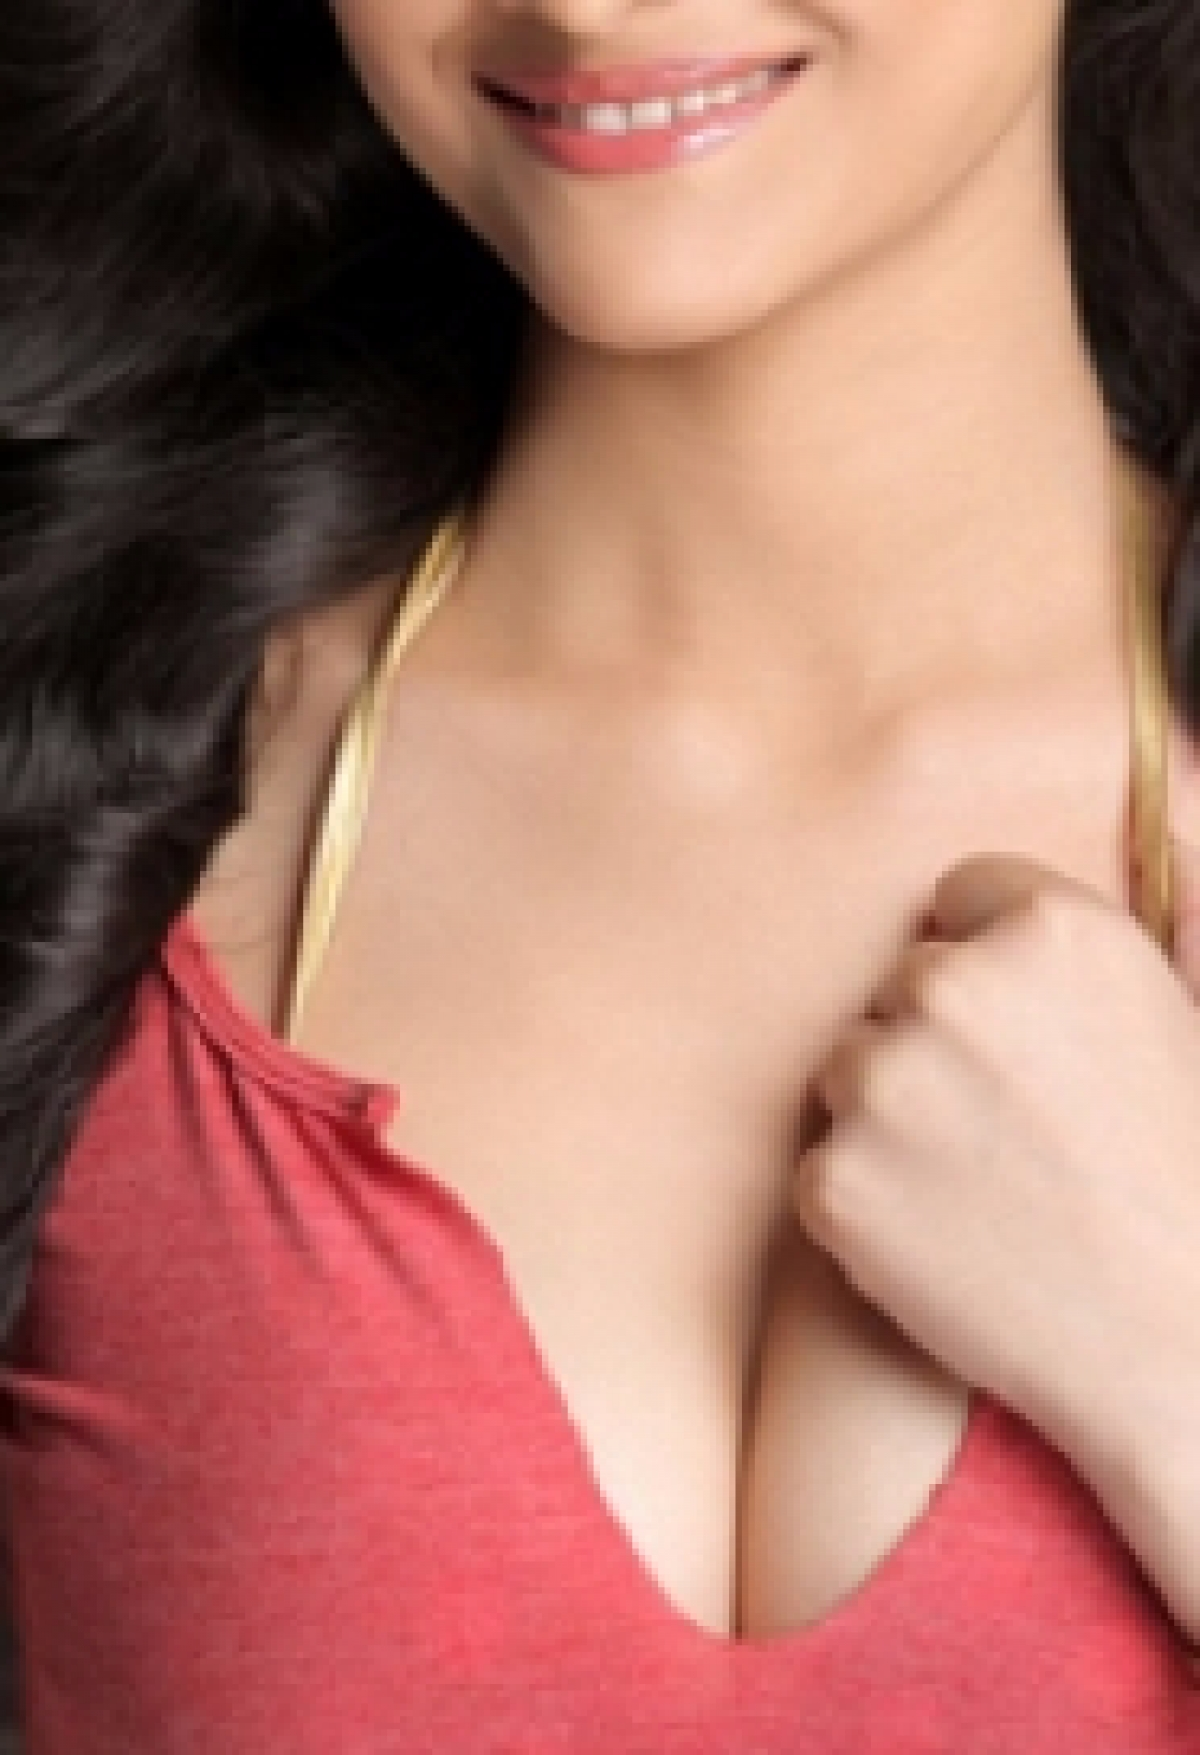 Mumbai Escorts| Mumbai Escorts Agency| Mumbai Escort Services